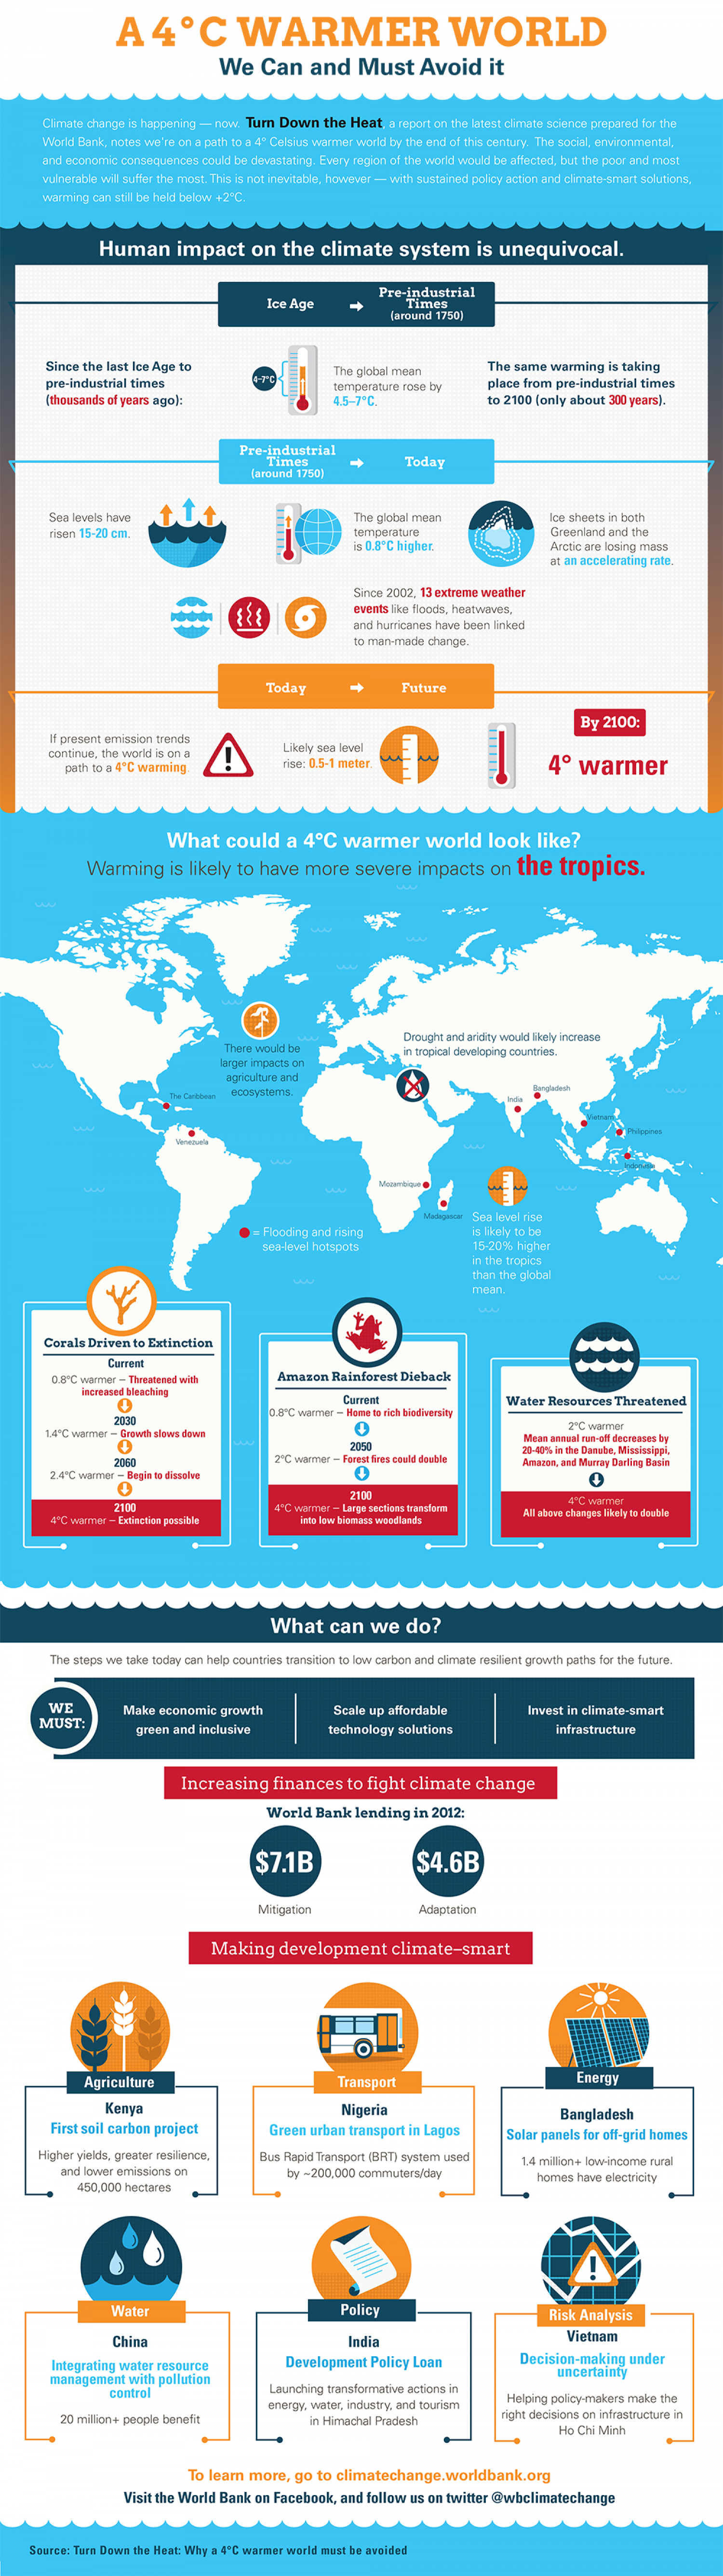 A 4 Degree Warmer World - We can and must avoid it Infographic